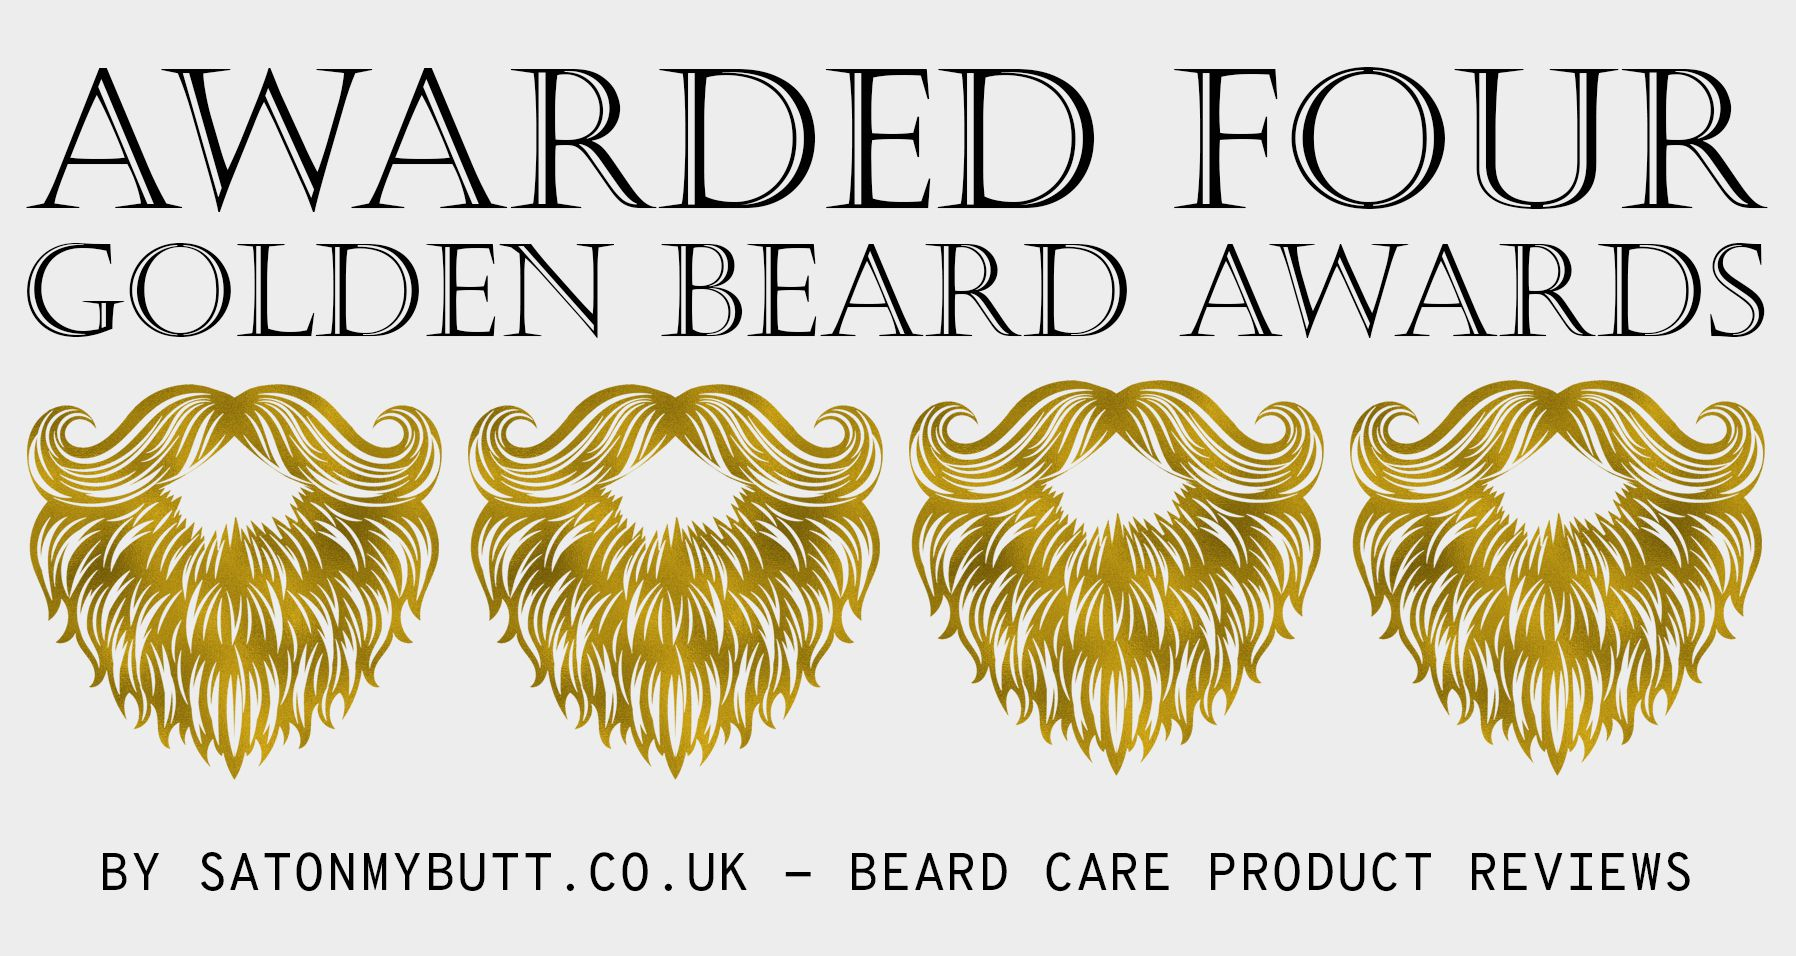 Award Winning Beard Oil - Sat On My Butt